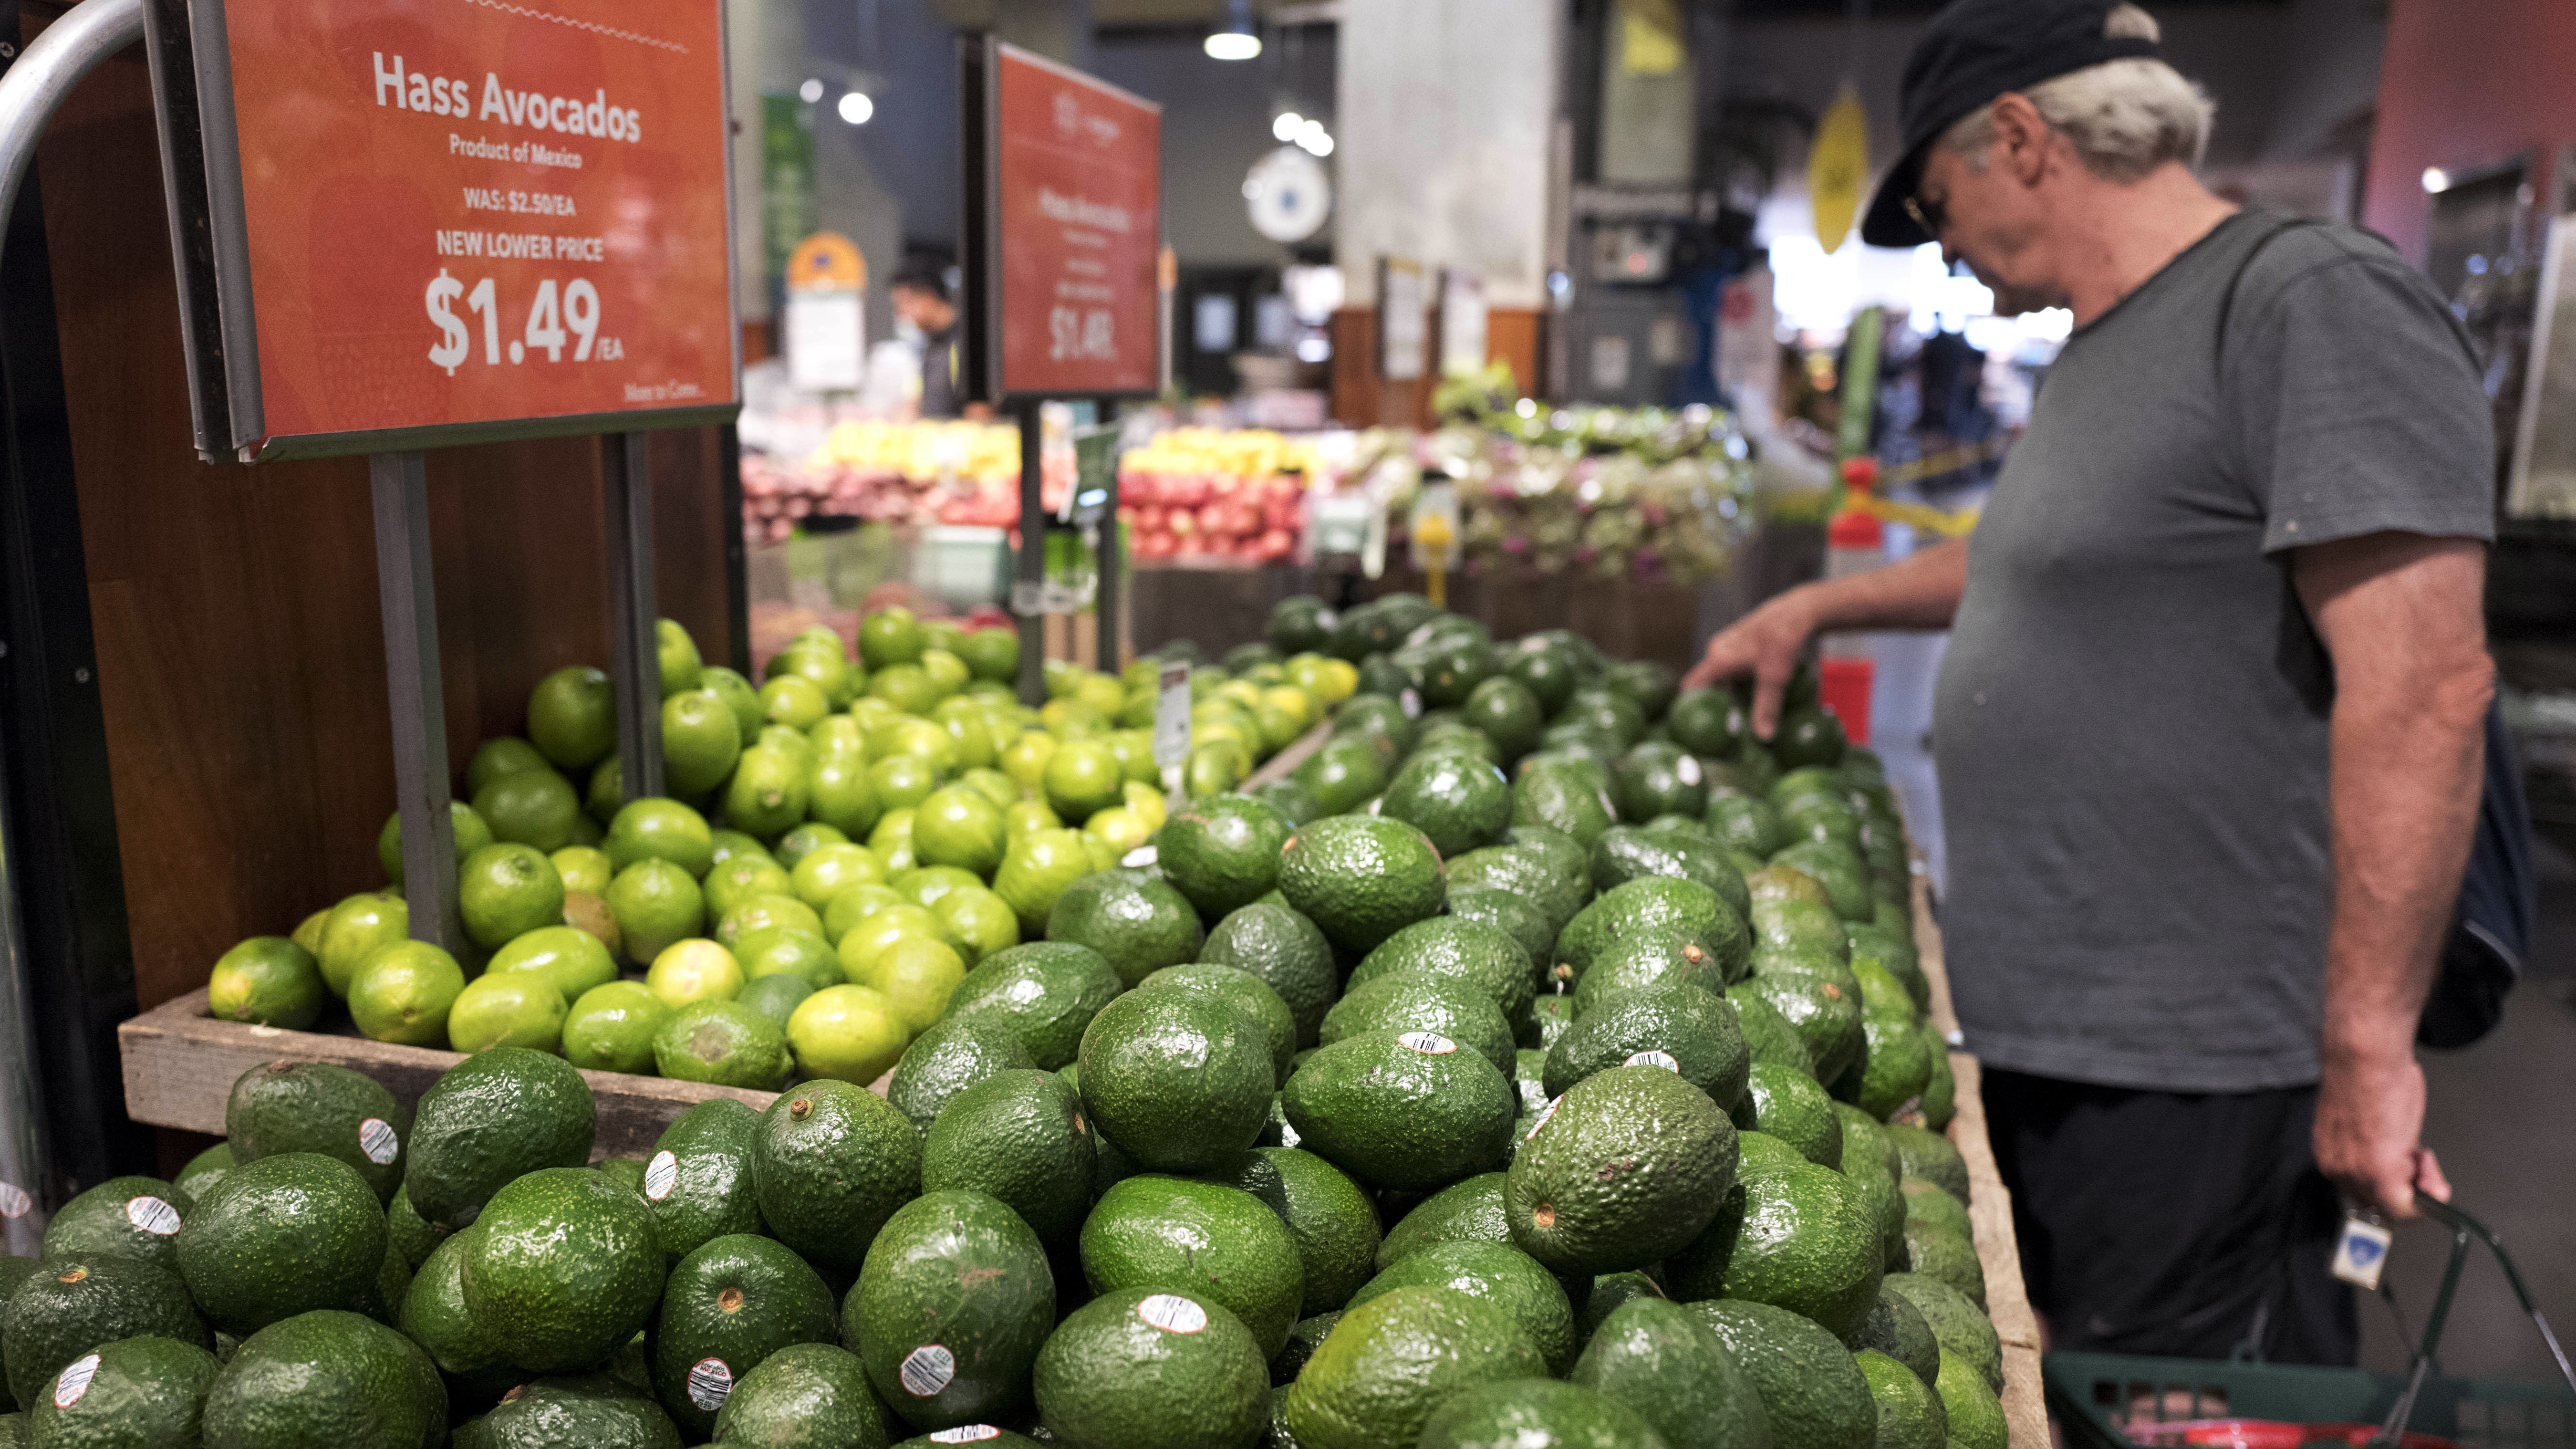 A man shops for avocados at a Whole Foods Market, in New York.